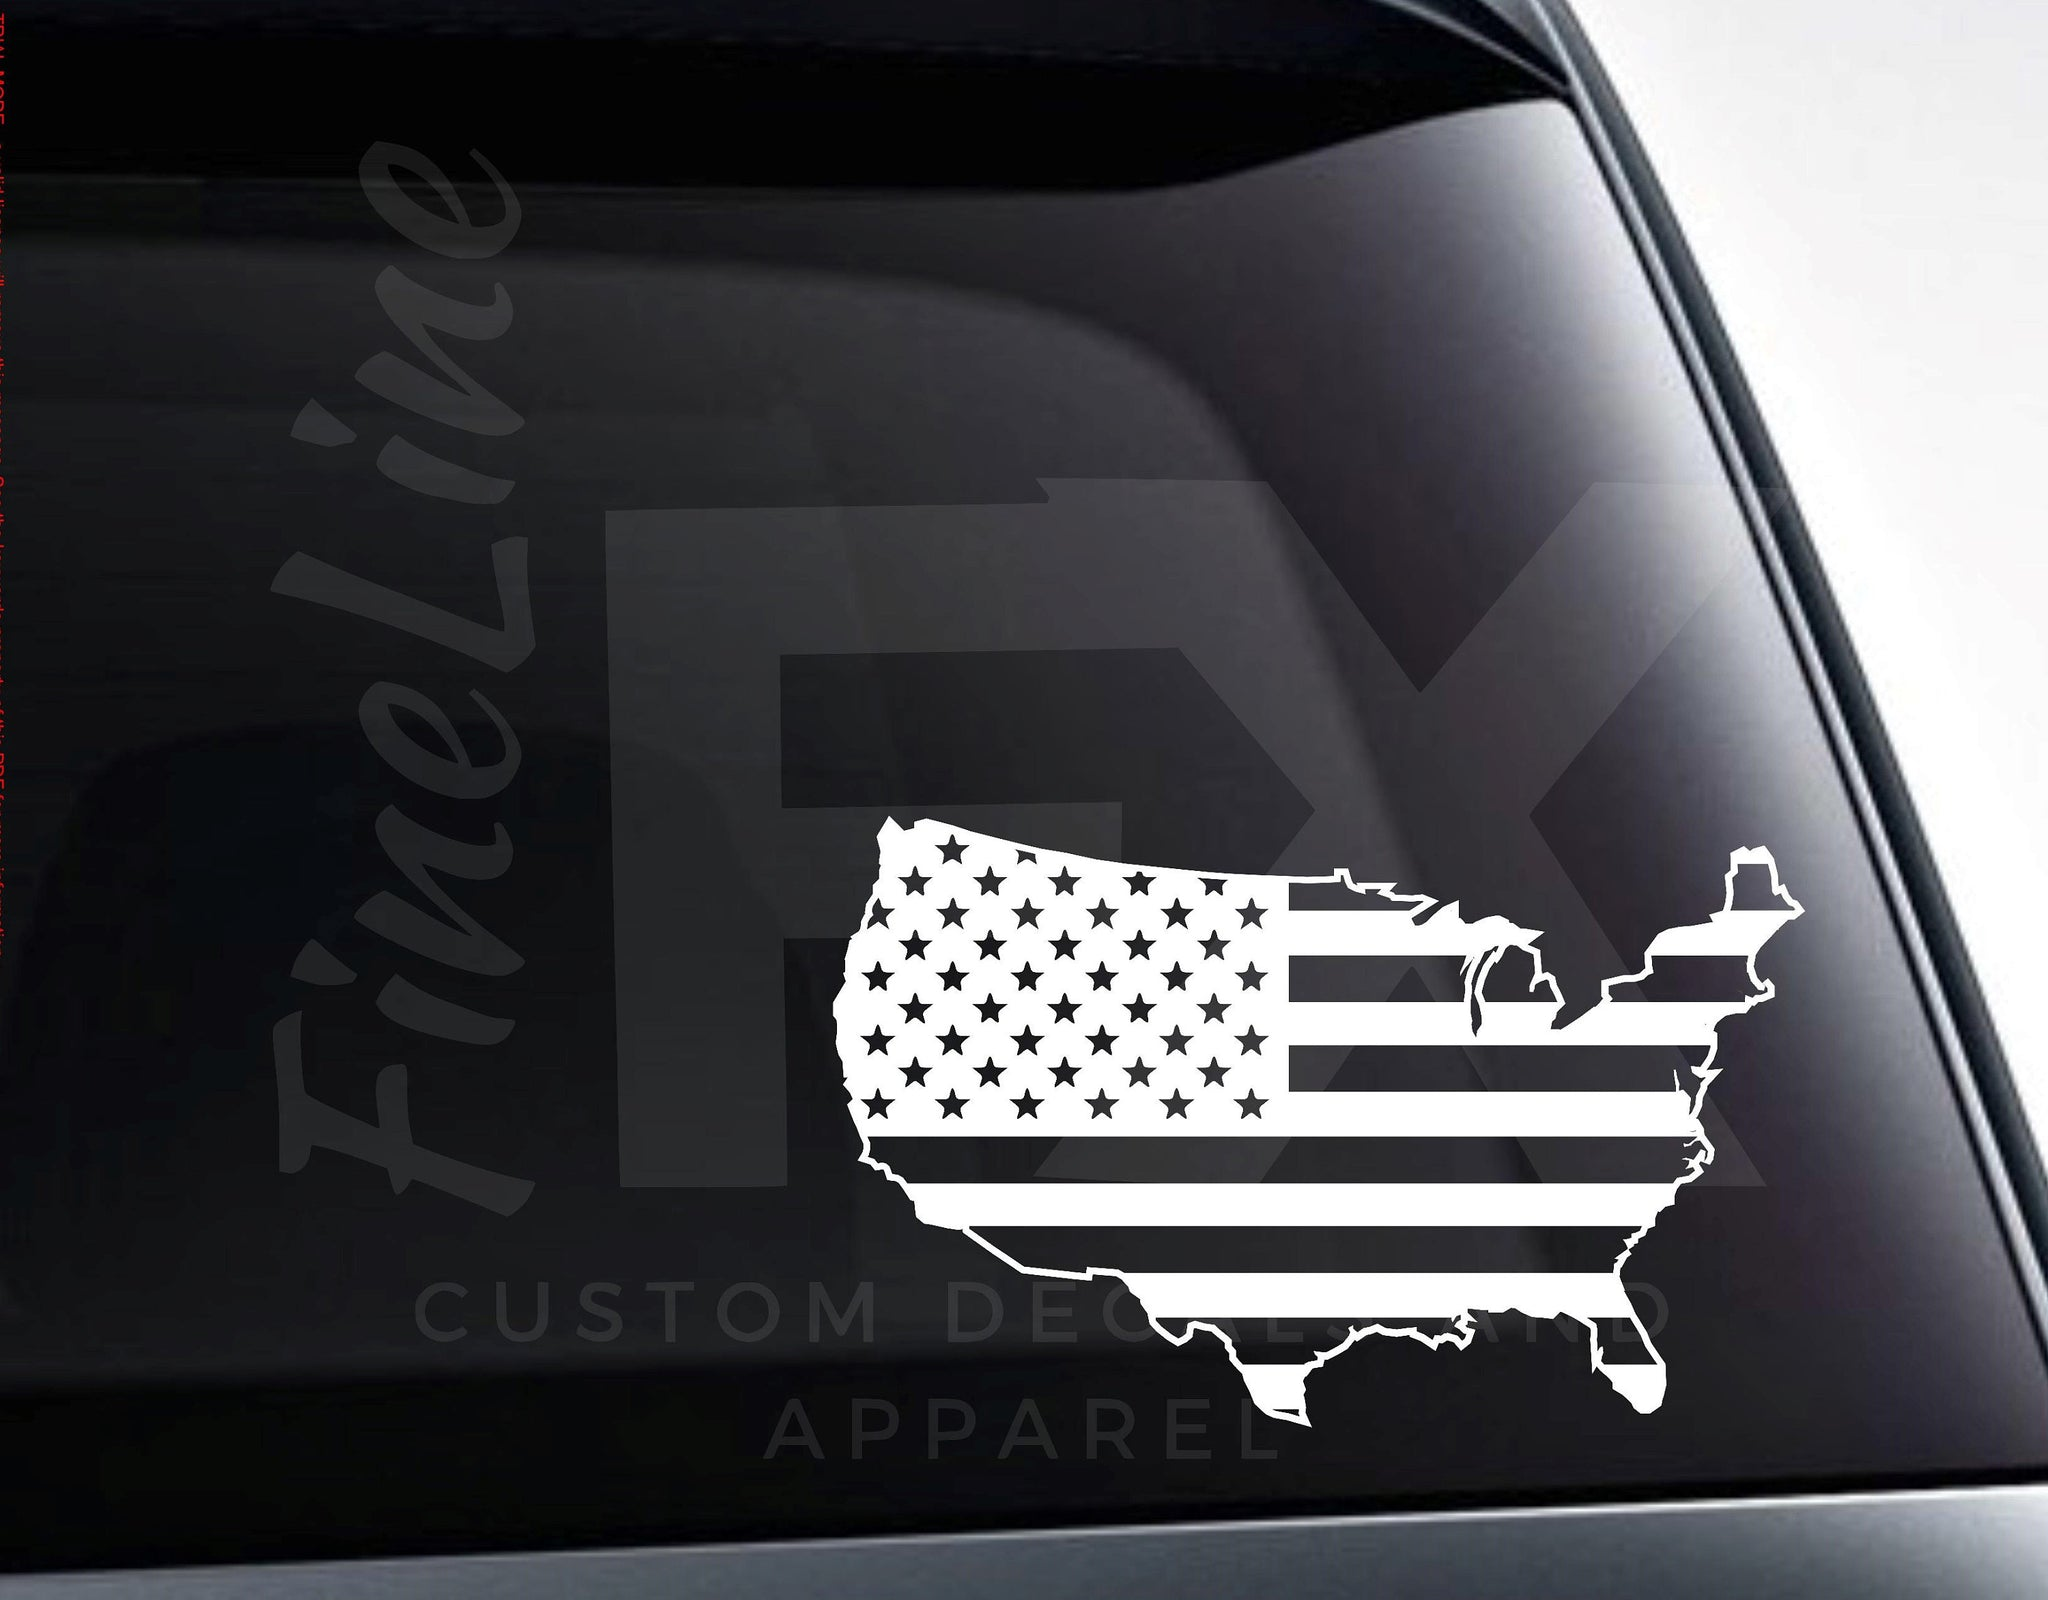 USA United States Shaped American Flag Die Cut Vinyl Decal Sticker